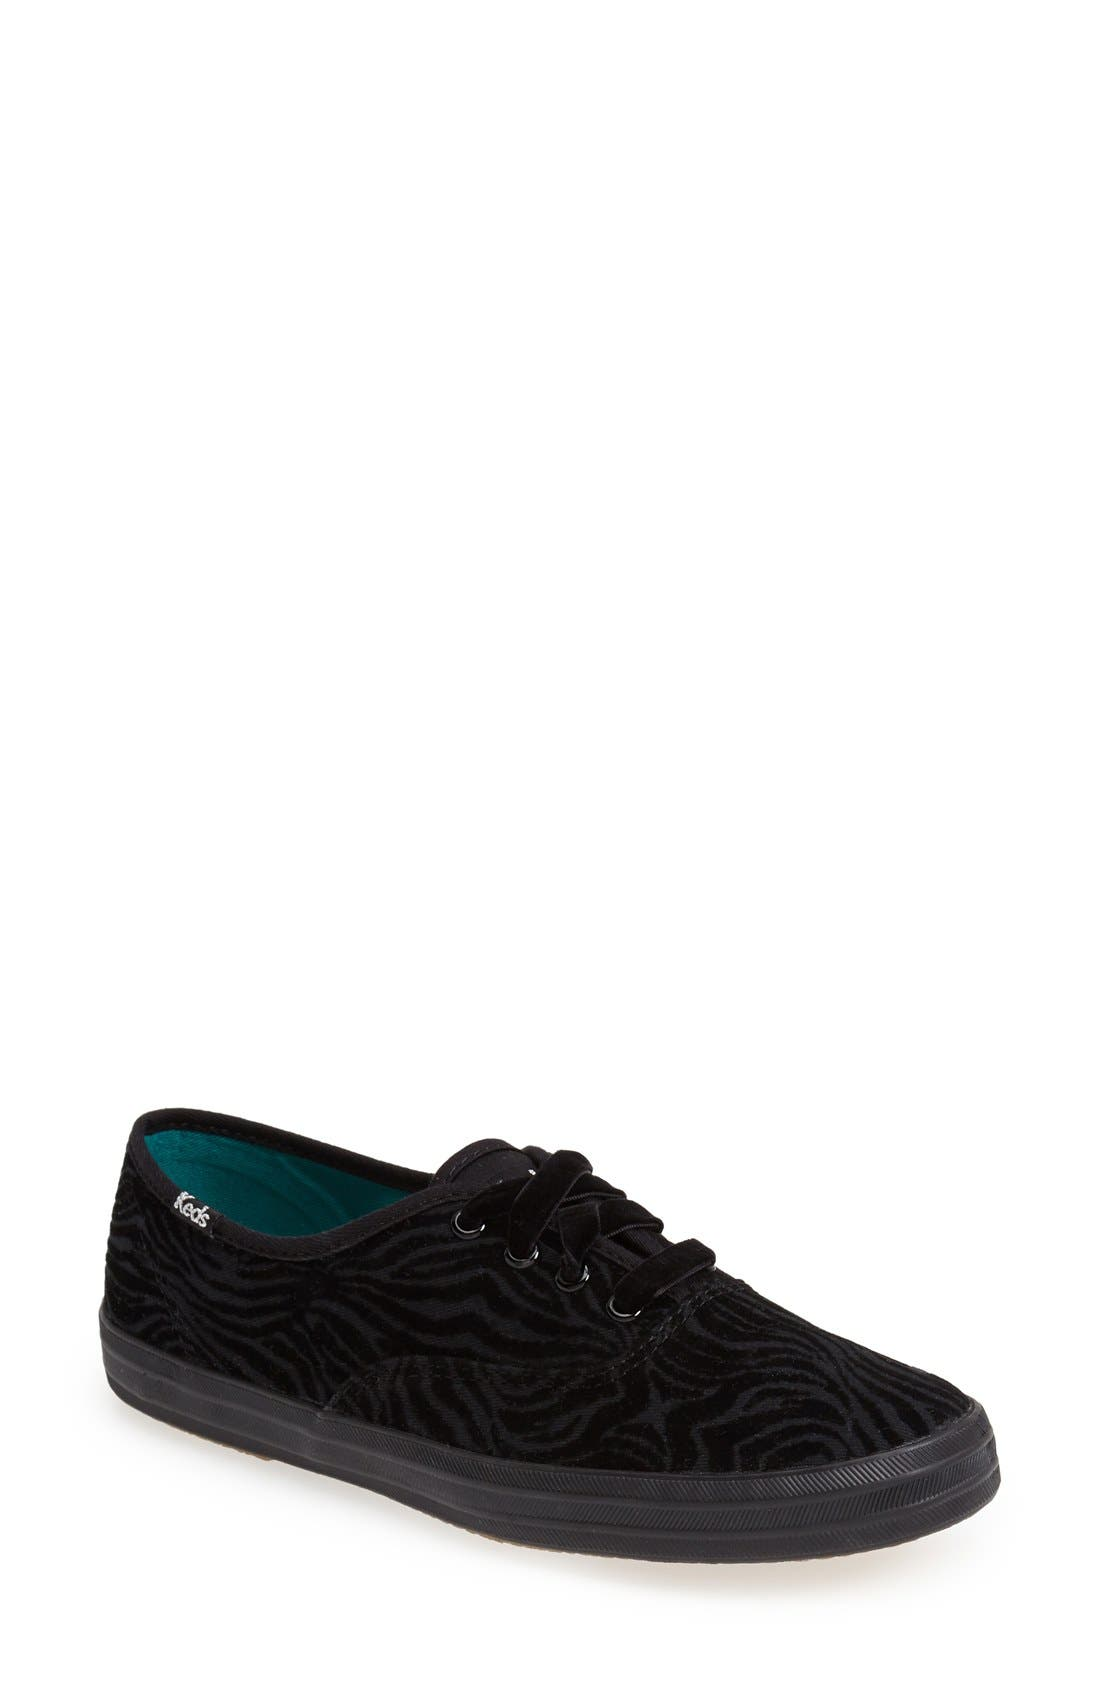 Alternate Image 1 Selected - Keds® 'Champion - Zebra Stripe' Sneaker (Women)